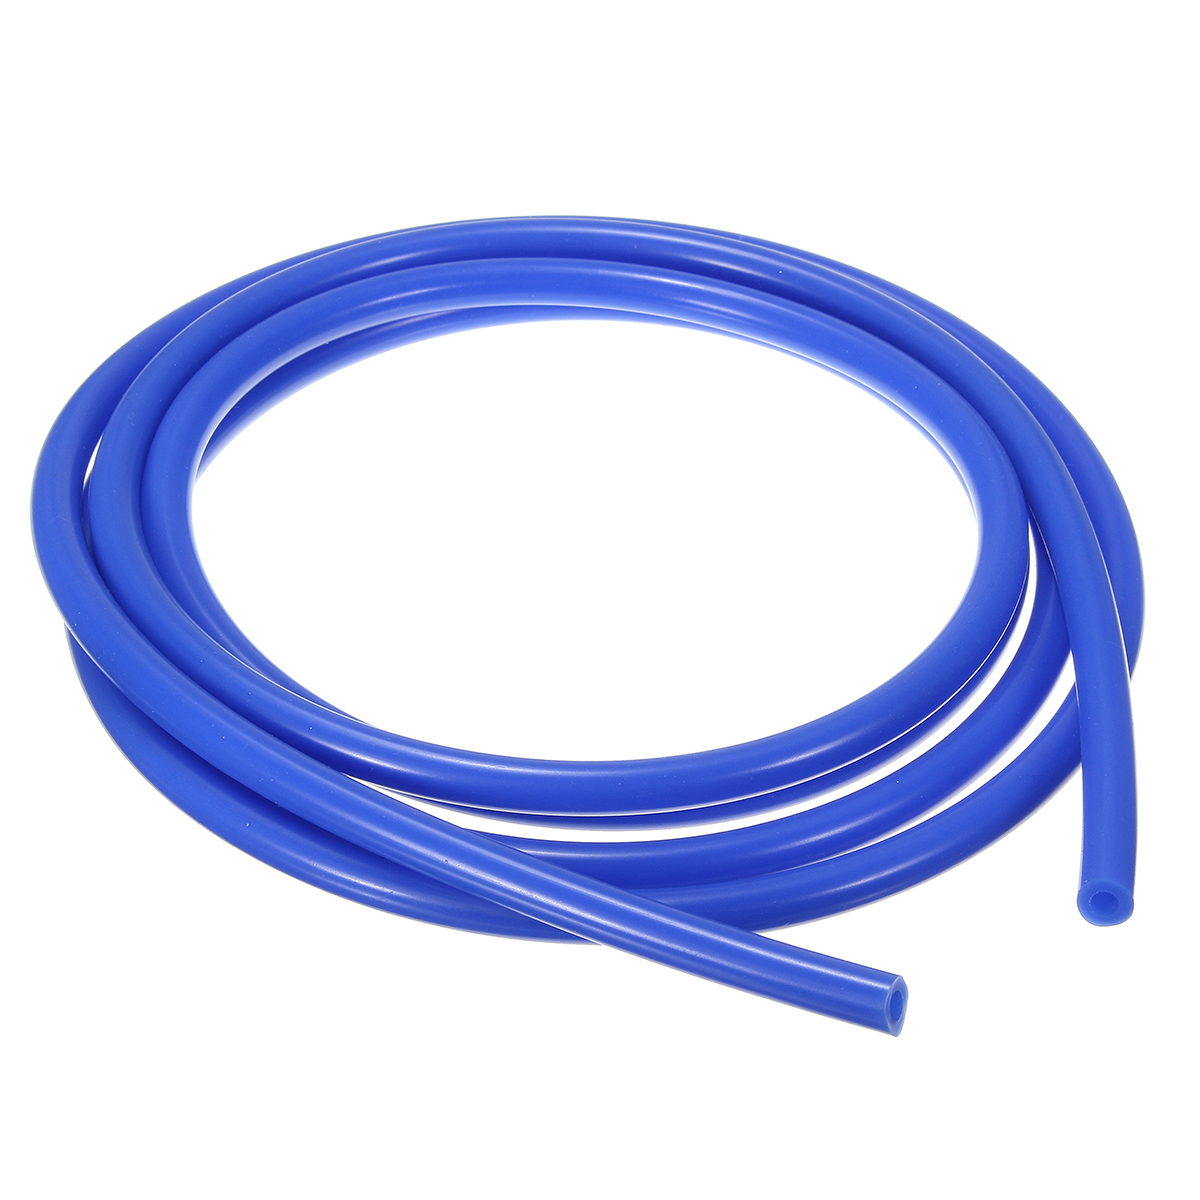 3 Meter 5mm Silicone Vacuum Hose Tube Tubing Line Pipe 10 Feet Cable Blue Black